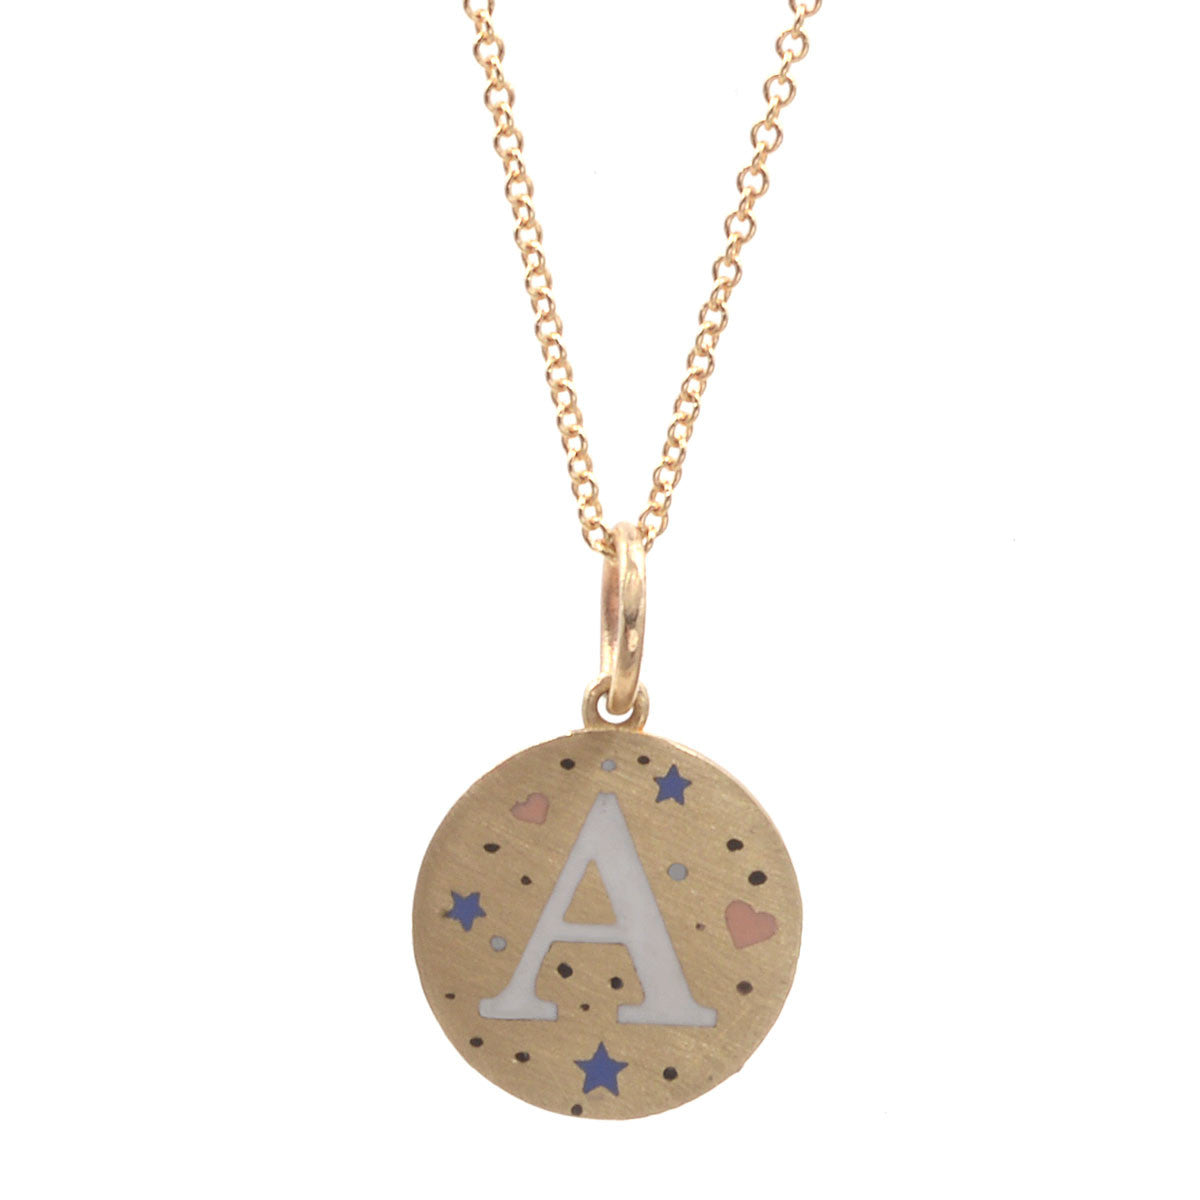 Personalized custom enamel speckled initials necklace charm pendant custom enamel speckled initials necklace aloadofball Image collections